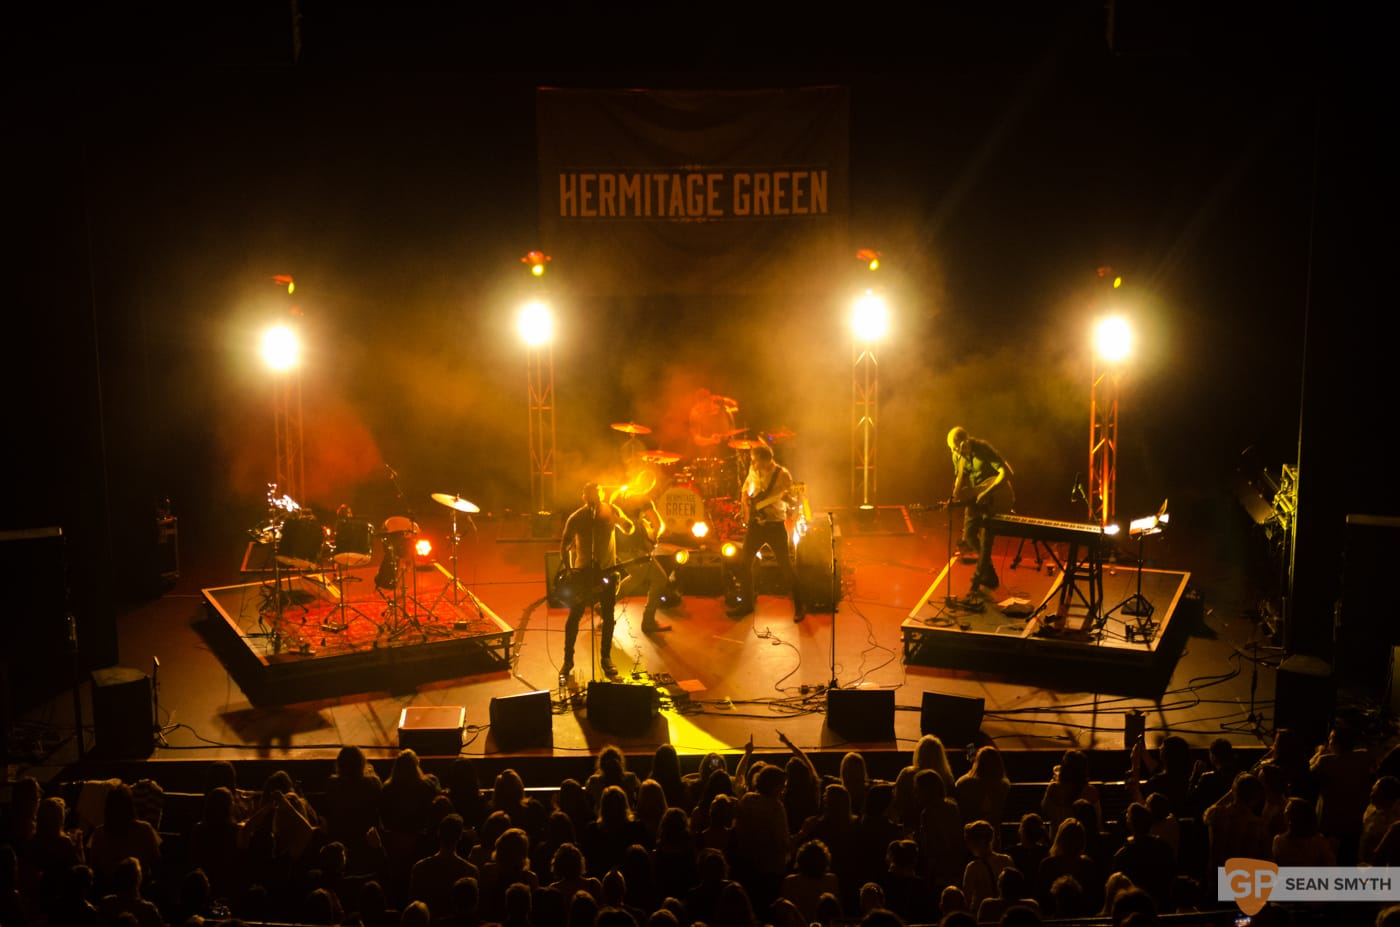 hermitage-green-at-cork-opera-house-by-sean-smyth-8-3-16-29-of-45